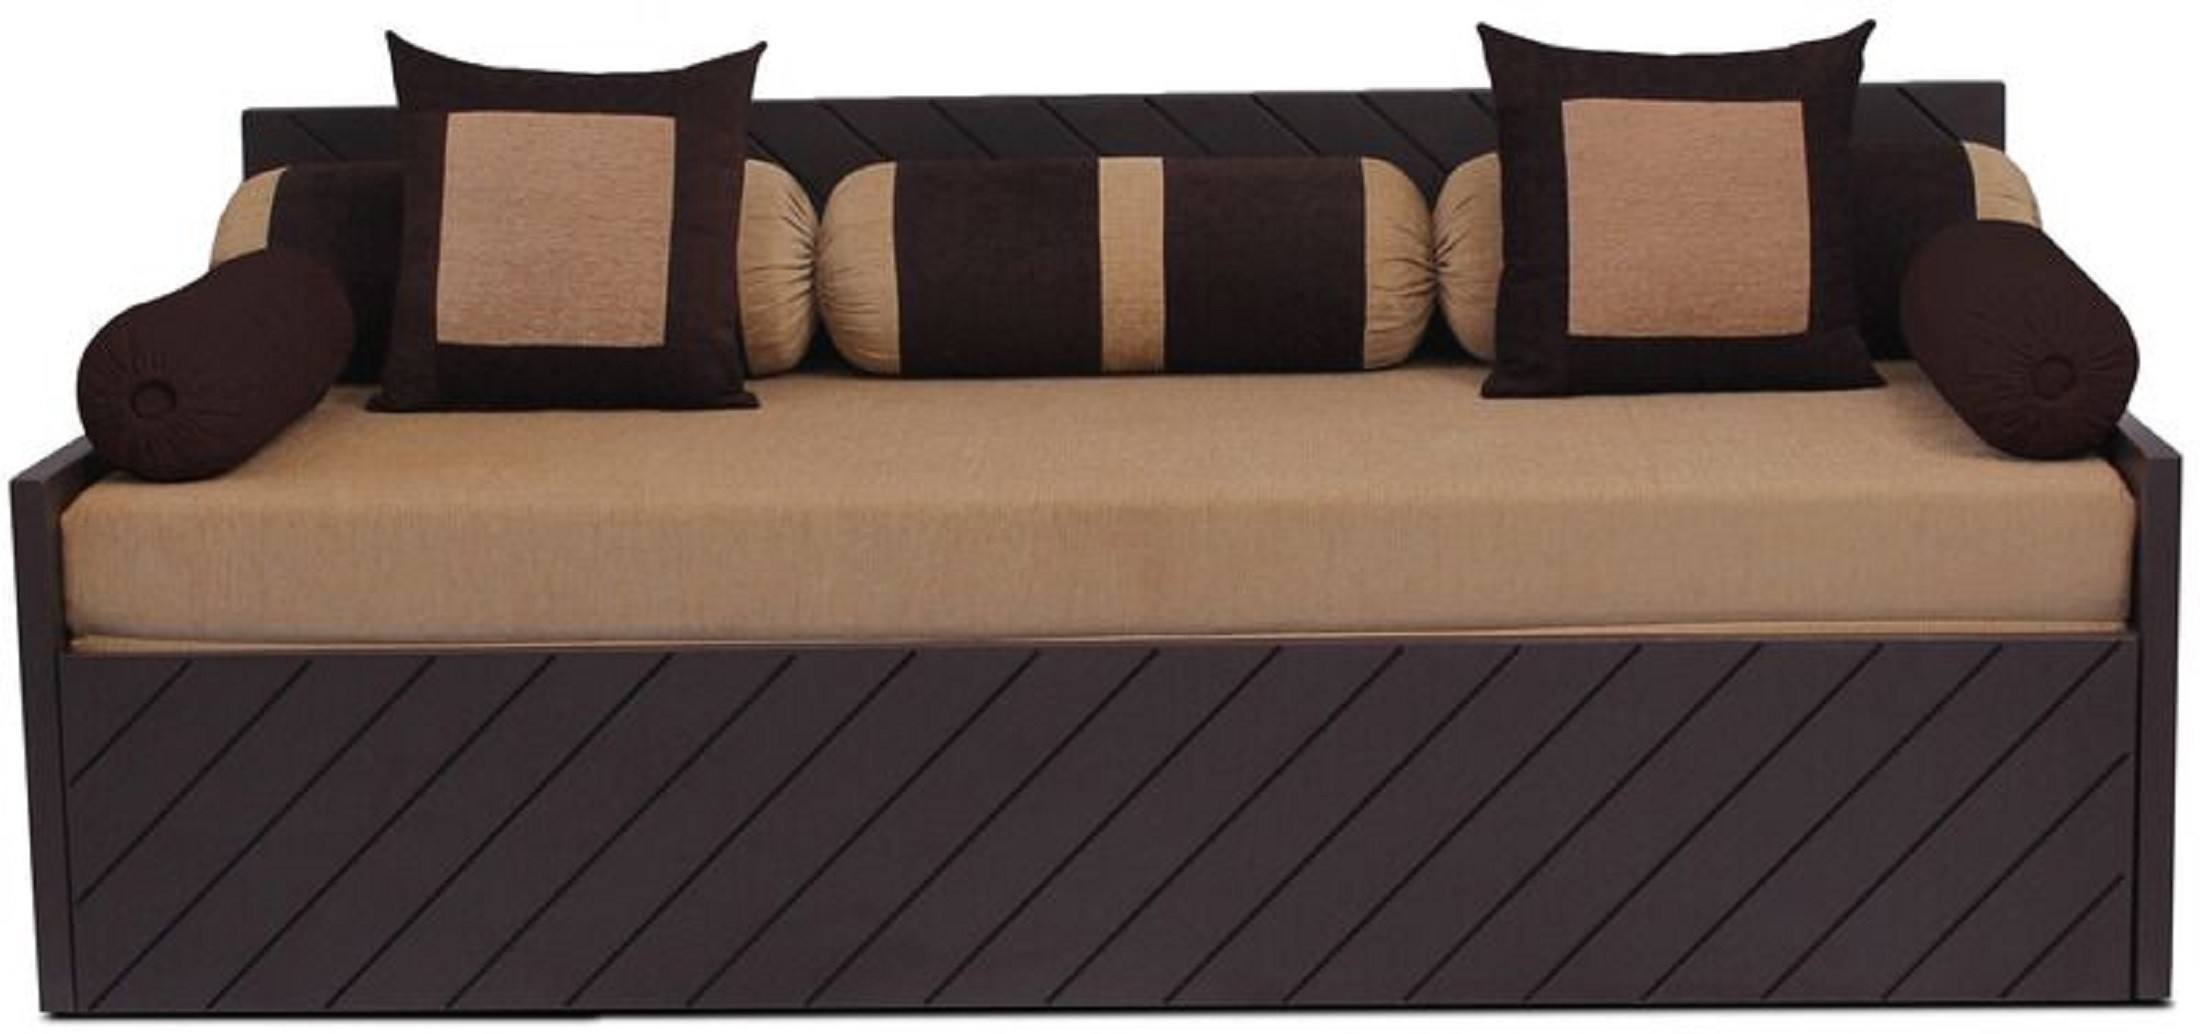 View Auspicious Home Kaiden (2 Pillows, 5 Bolsters) Double Fabric Sofa Bed(Finish Color - Brown Mechanism Type - Pull Out) Furniture (Auspicious Home)